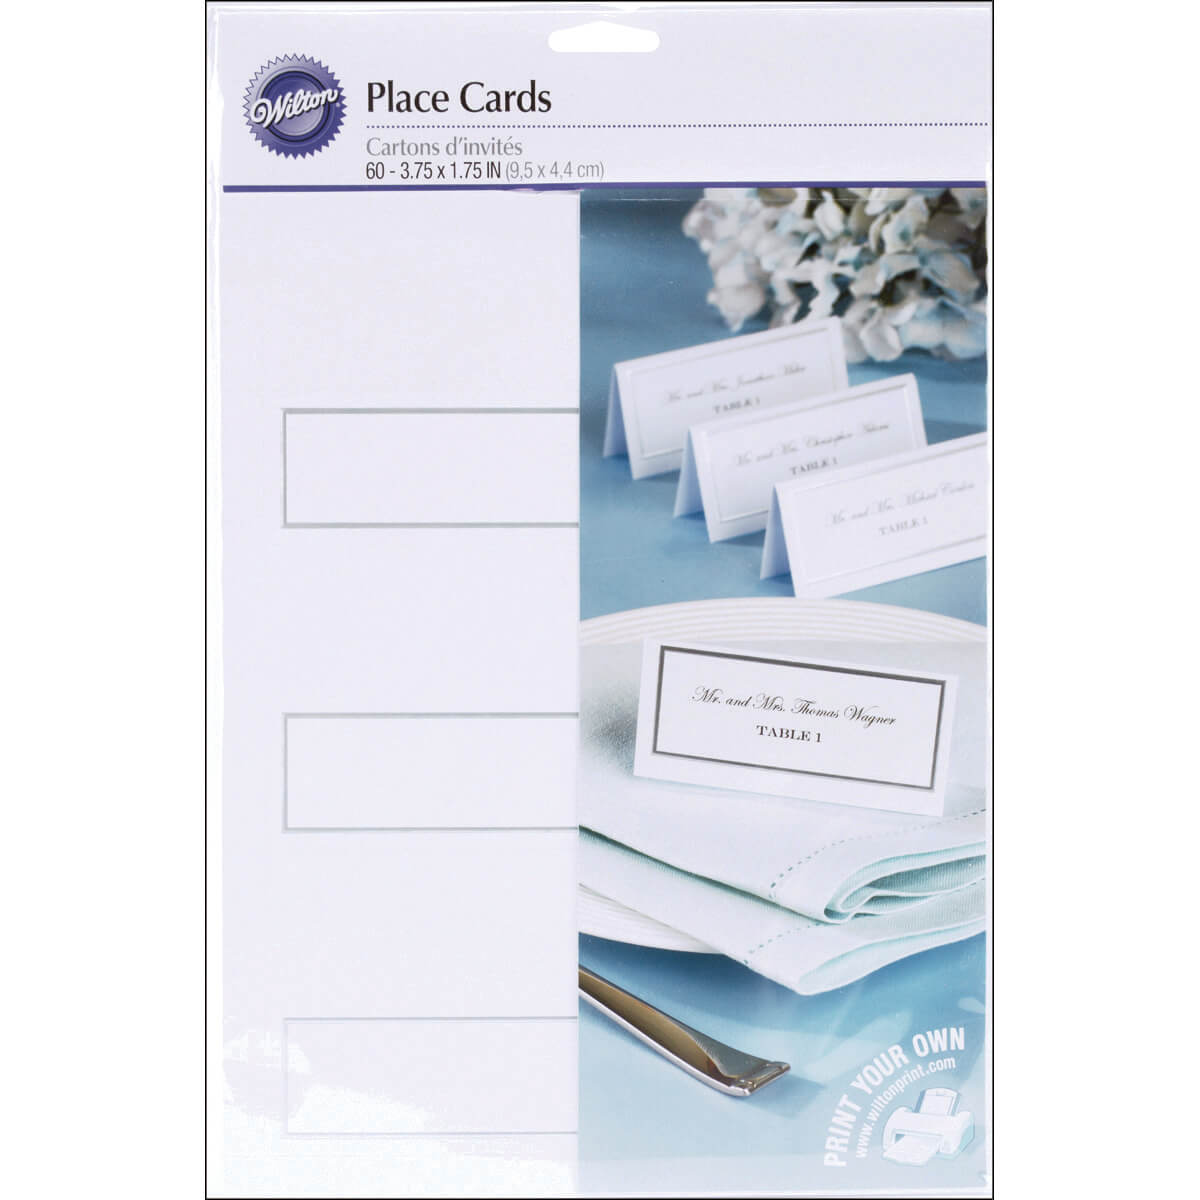 Details About Place Cards White With Silver Border For Imprintable Place Cards Template